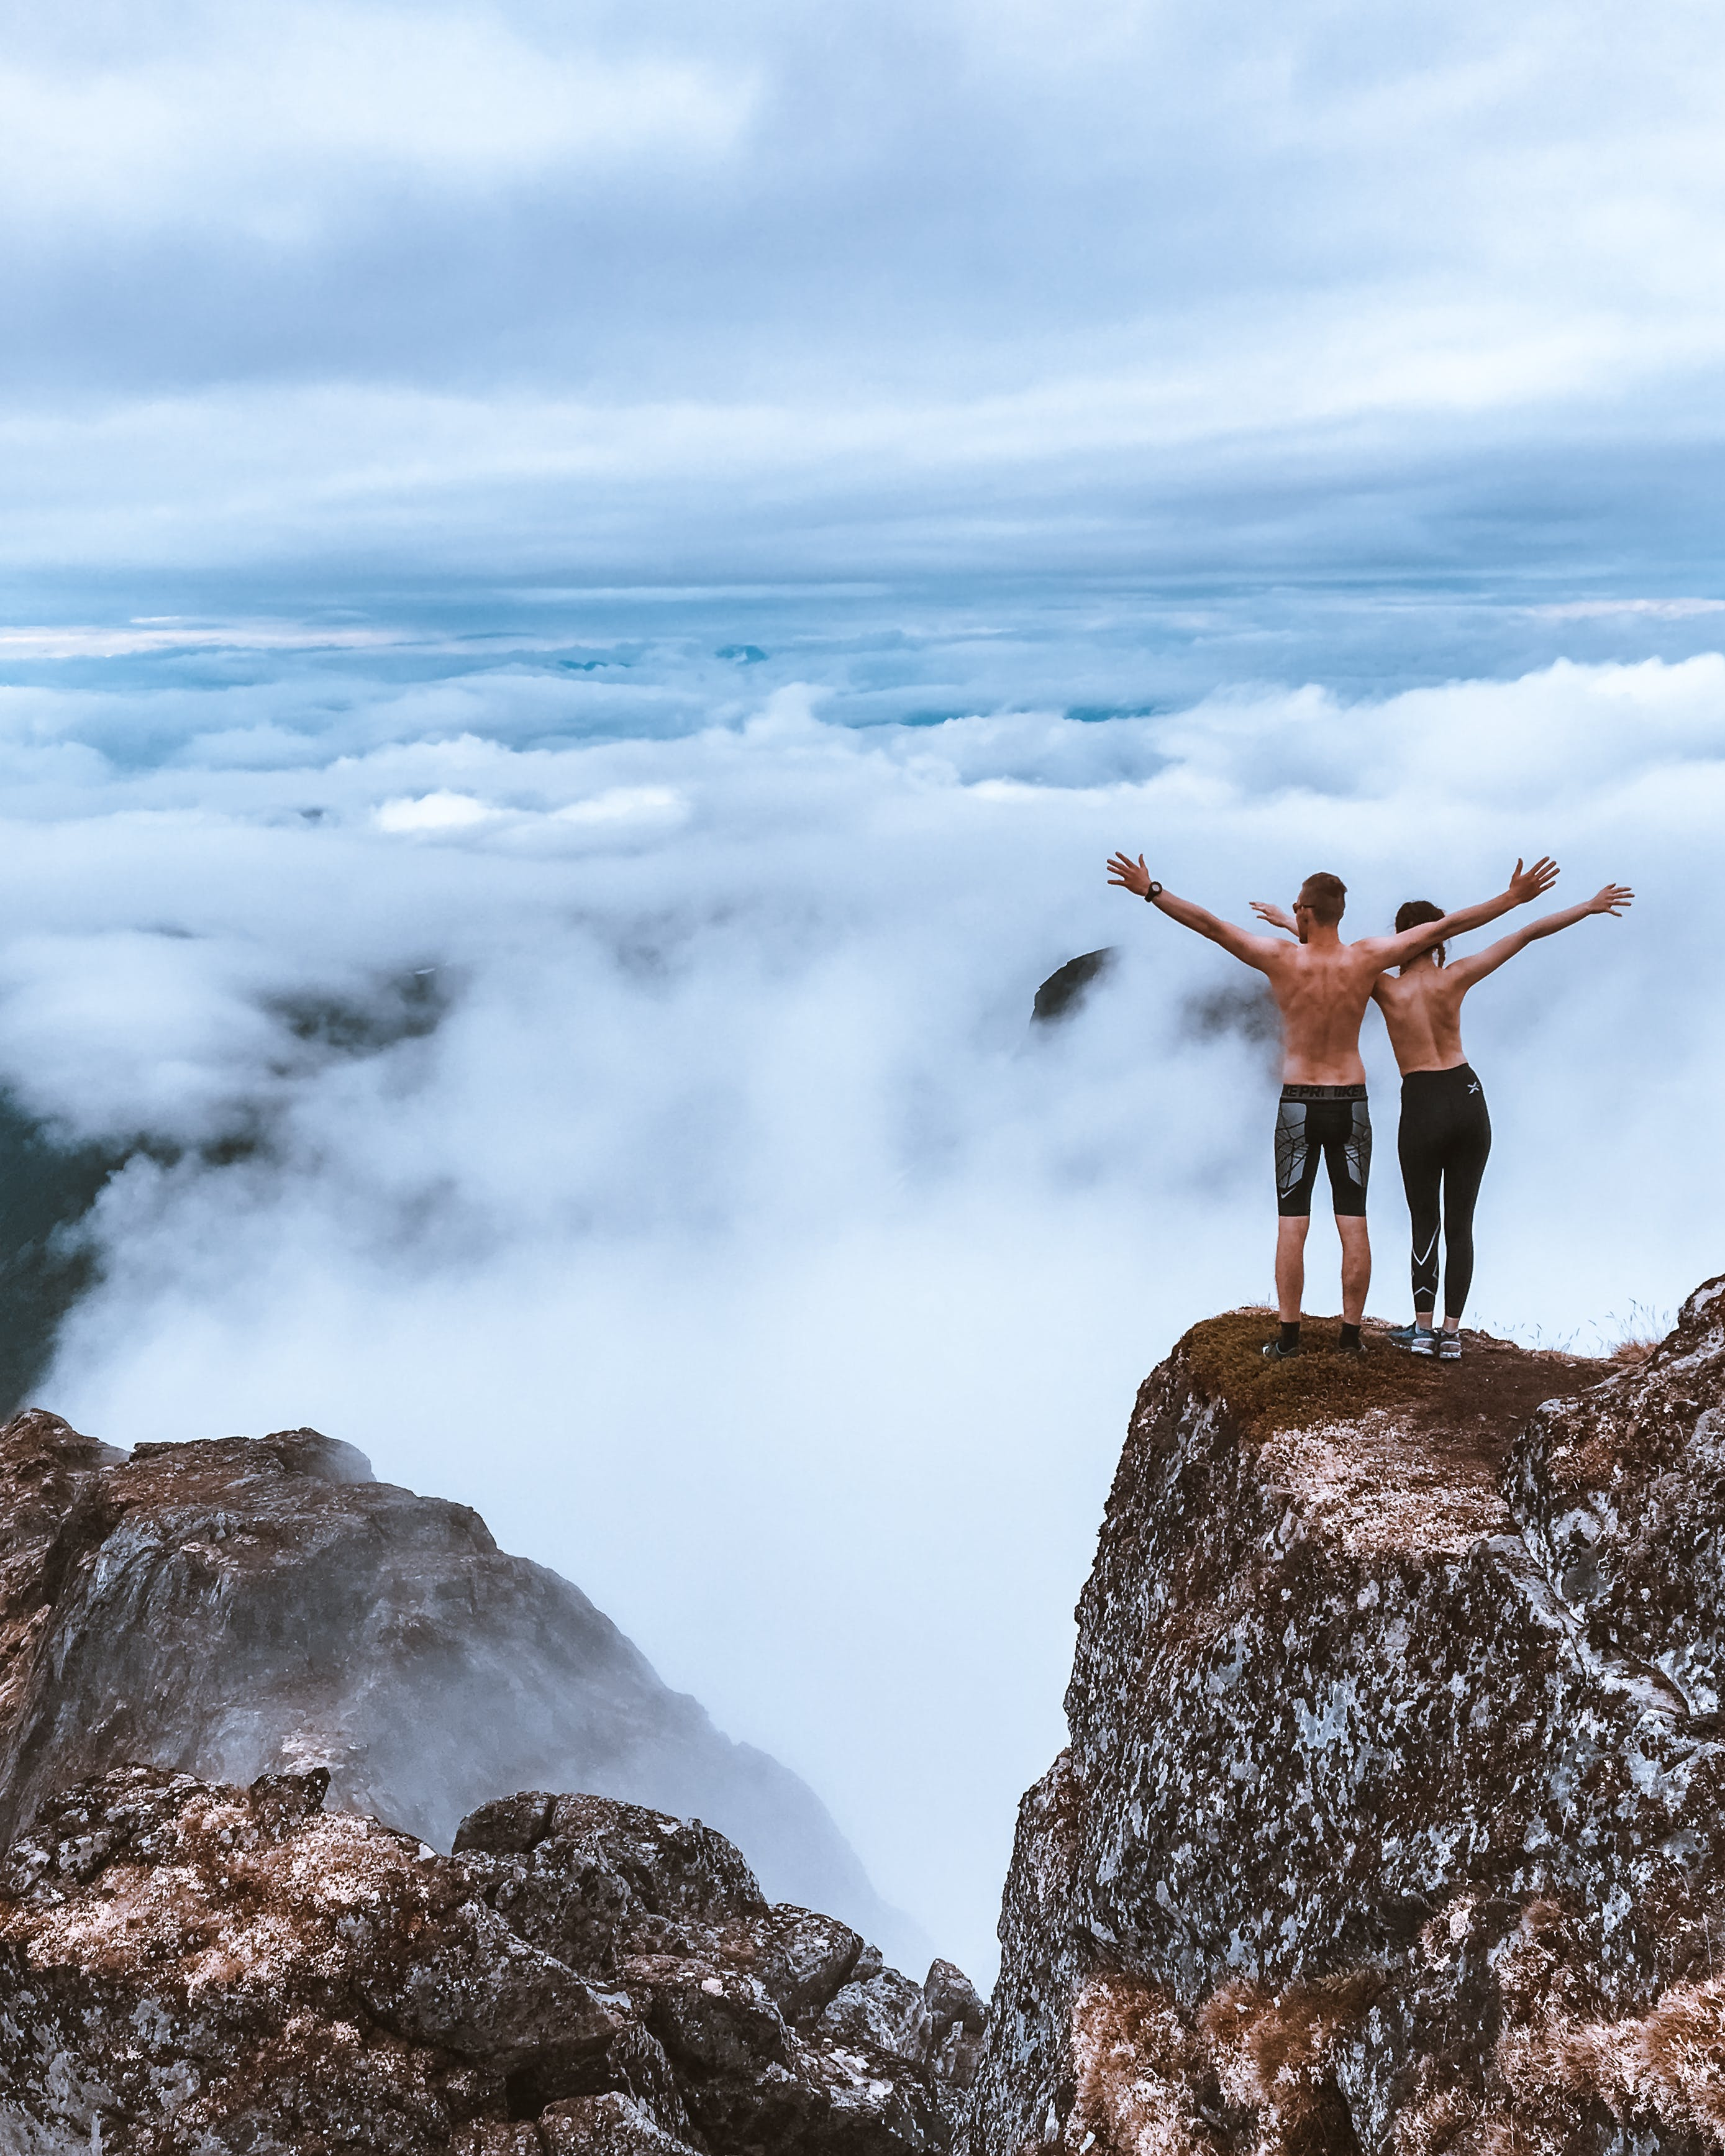 Scenic Photo of People Standing on Cliff